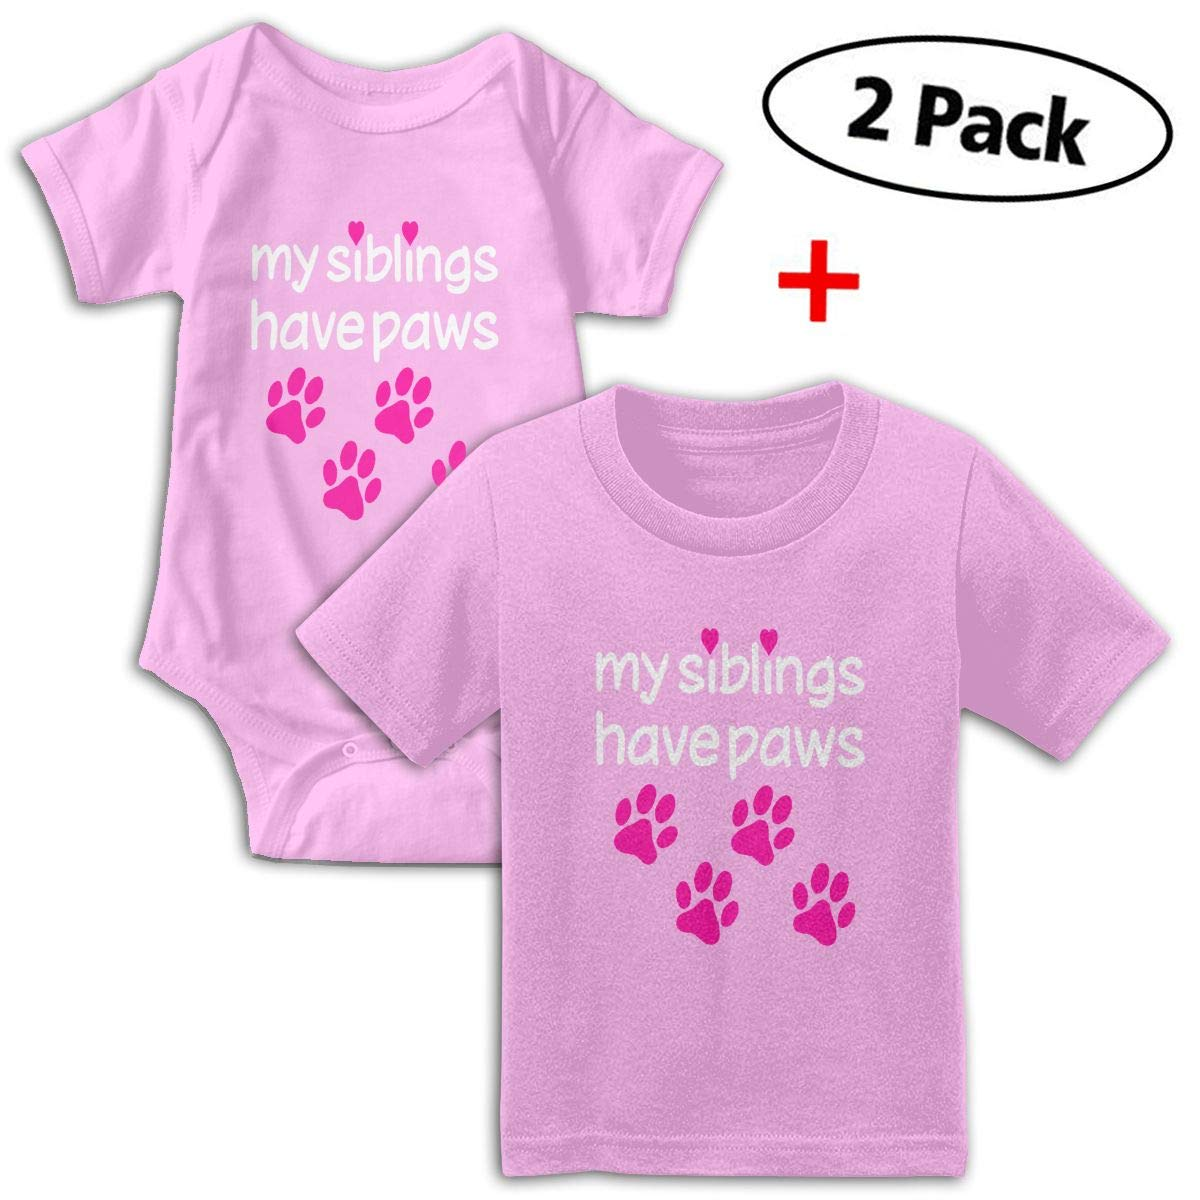 My Siblings Have Paws Babys Boys /& Girls Short Sleeve Romper Bodysuit Outfits And T-shirt